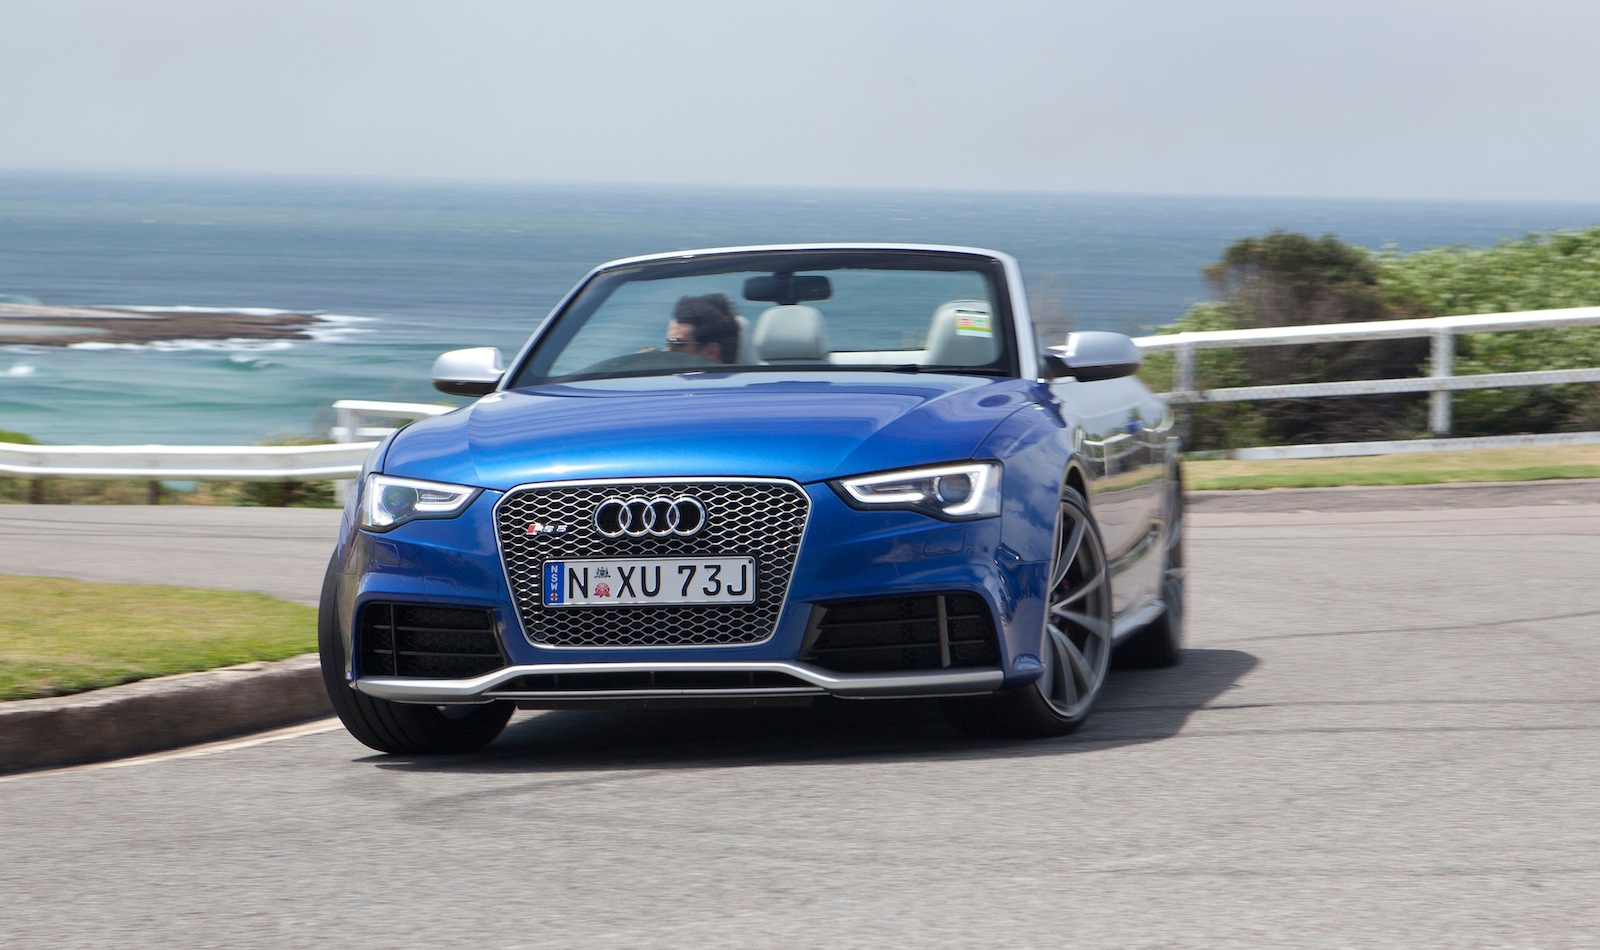 audi rs5 cabriolet launches at 175 900 coupe cut to 155 900 photos 1 of 22. Black Bedroom Furniture Sets. Home Design Ideas